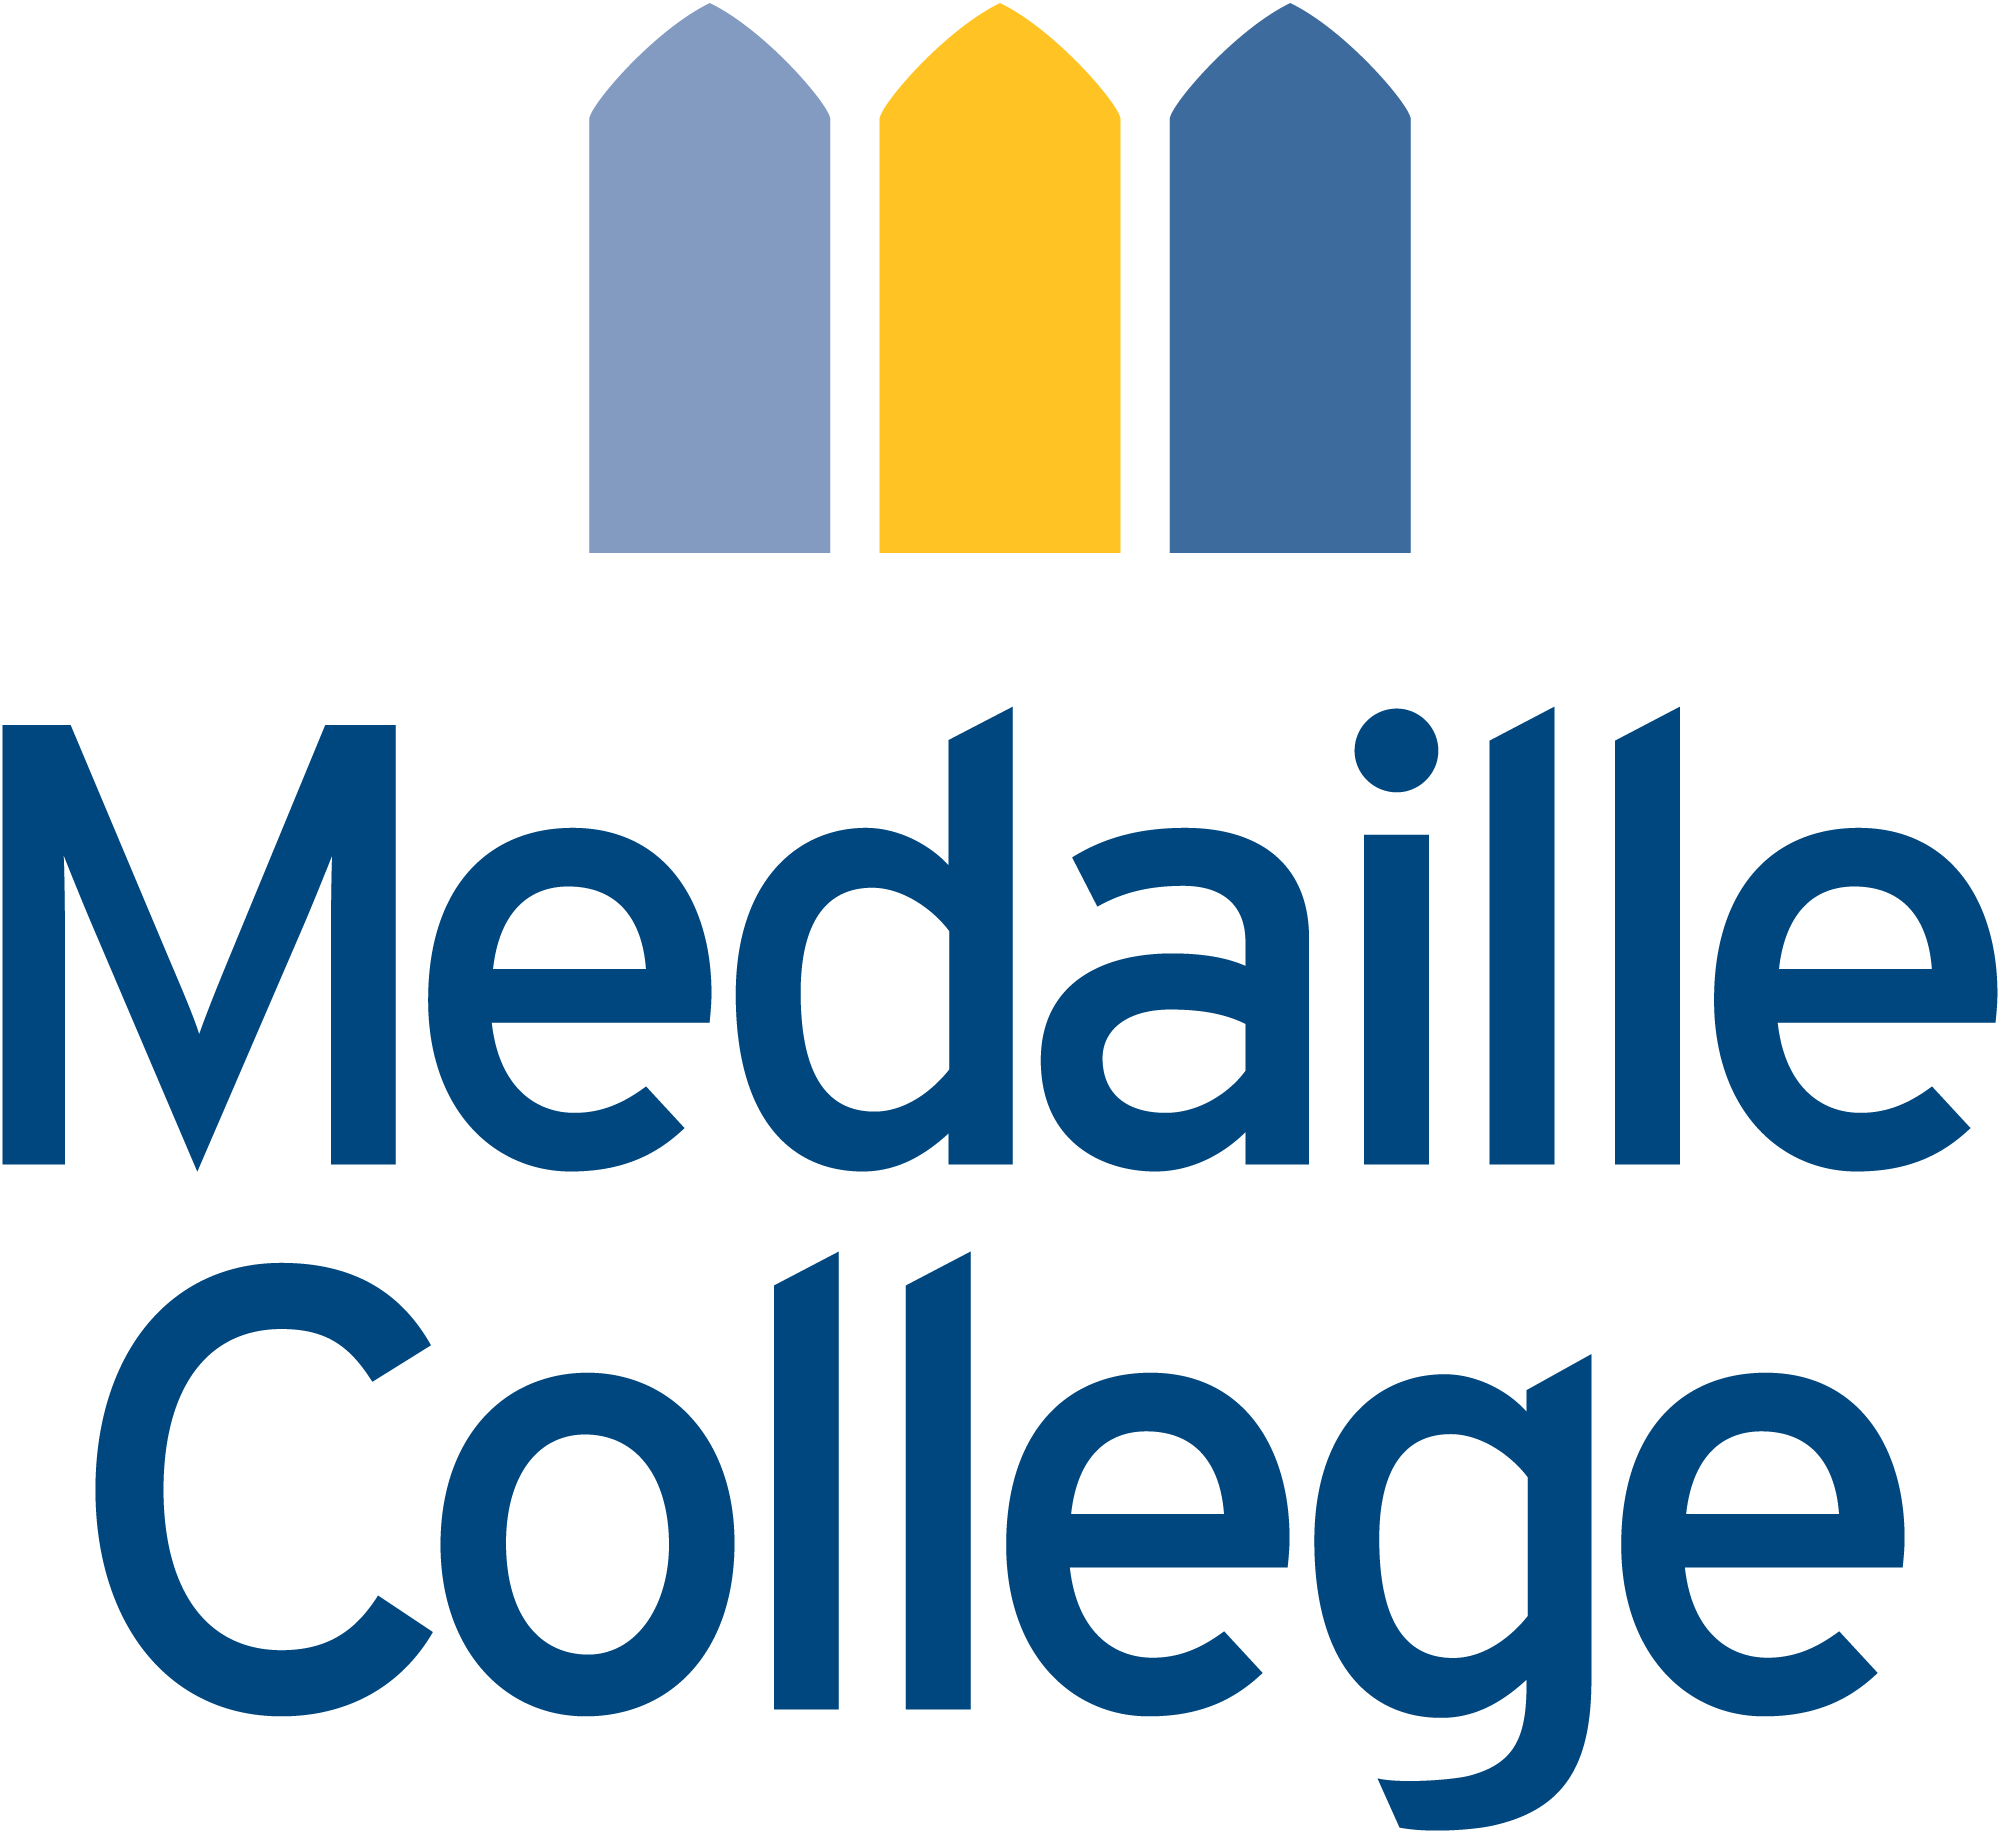 Medaille.png